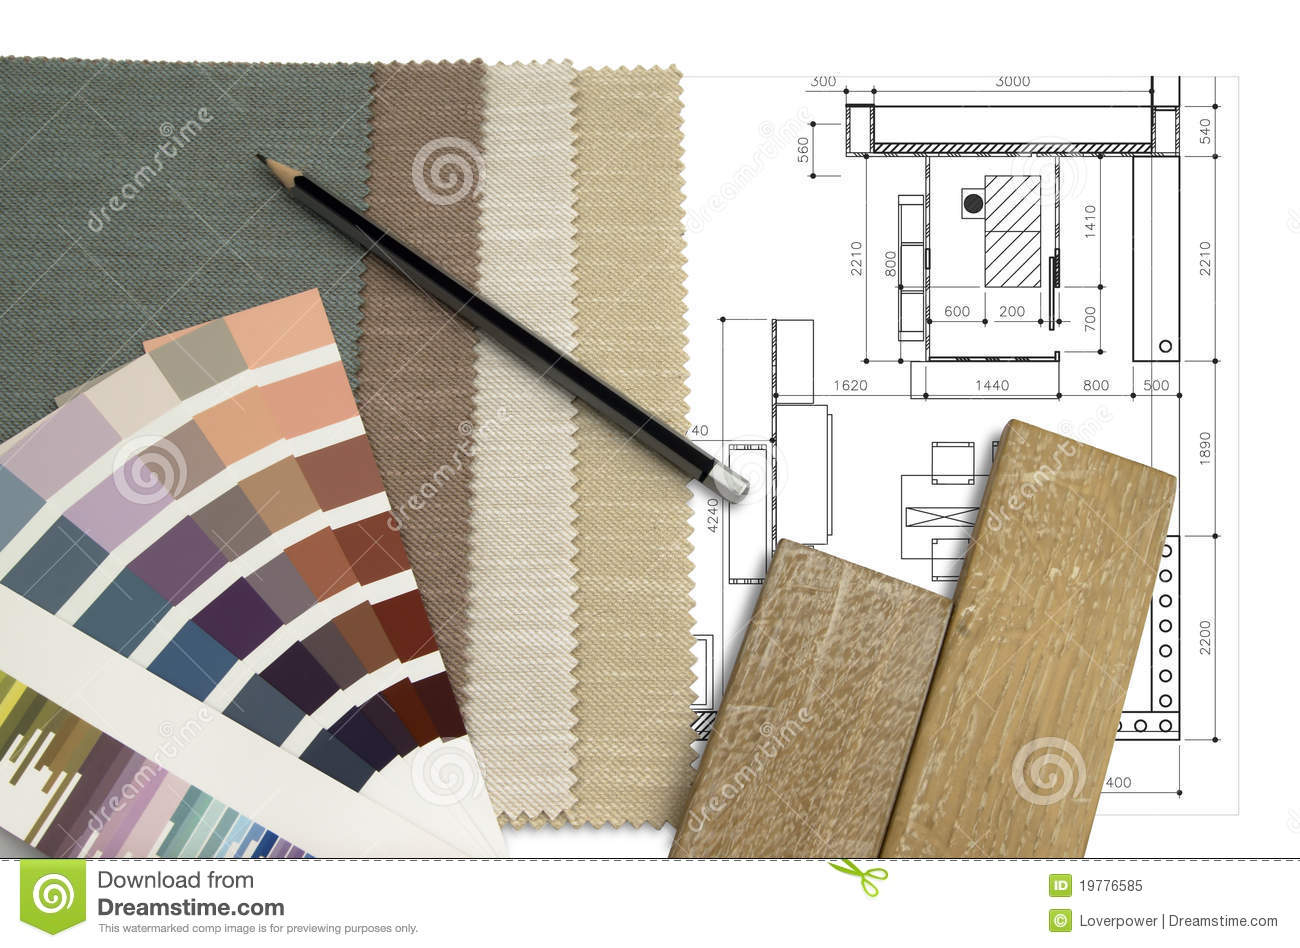 Royalty Free Stock Photo Design Fabric Interior